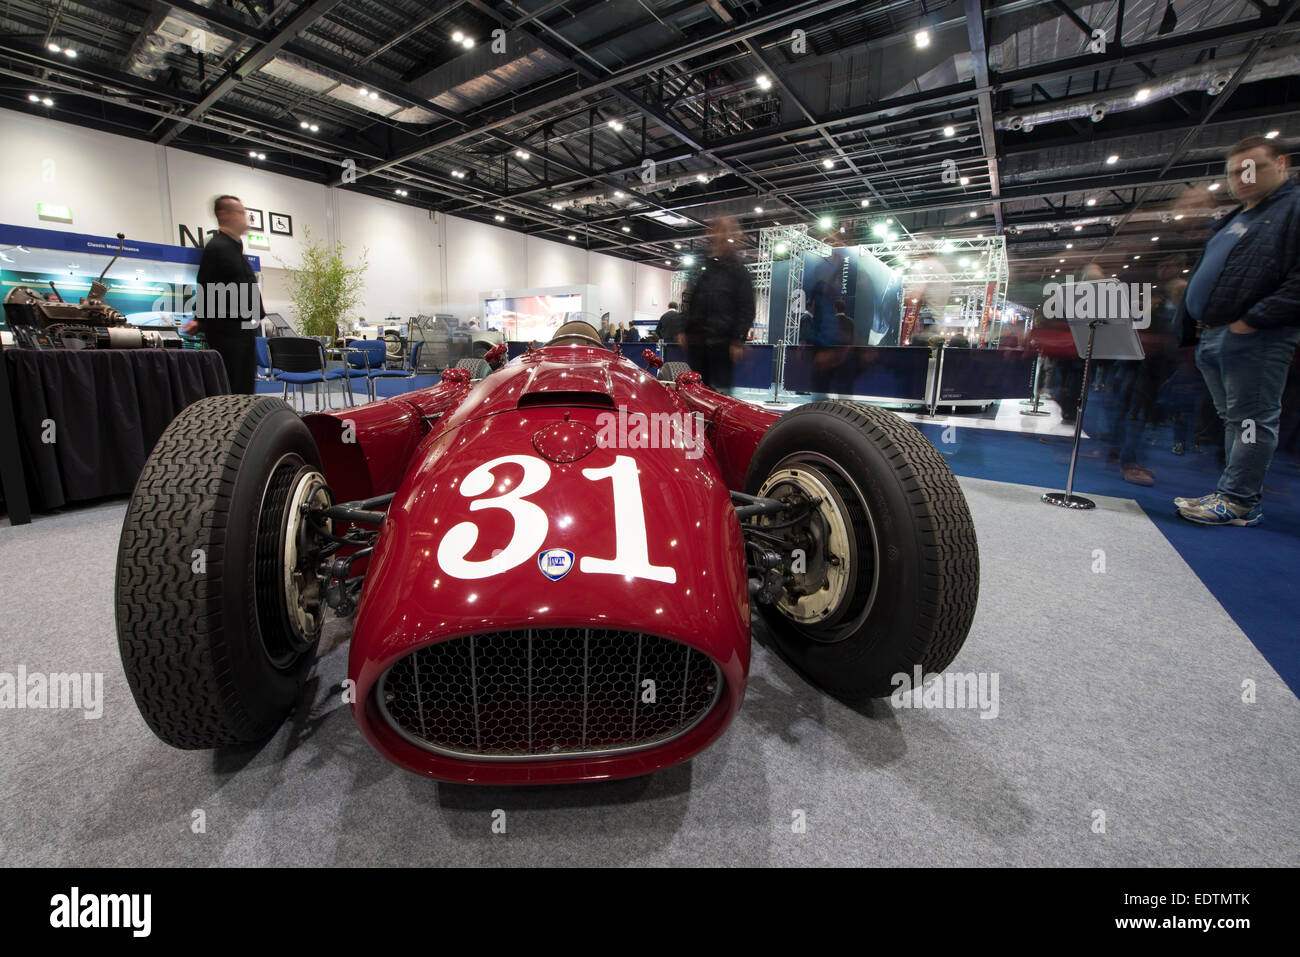 Lancia d50 stock photos lancia d50 stock images alamy iconic lancia ferrari d50 recreation by jim stokes workshops in the classic car show at vanachro Gallery